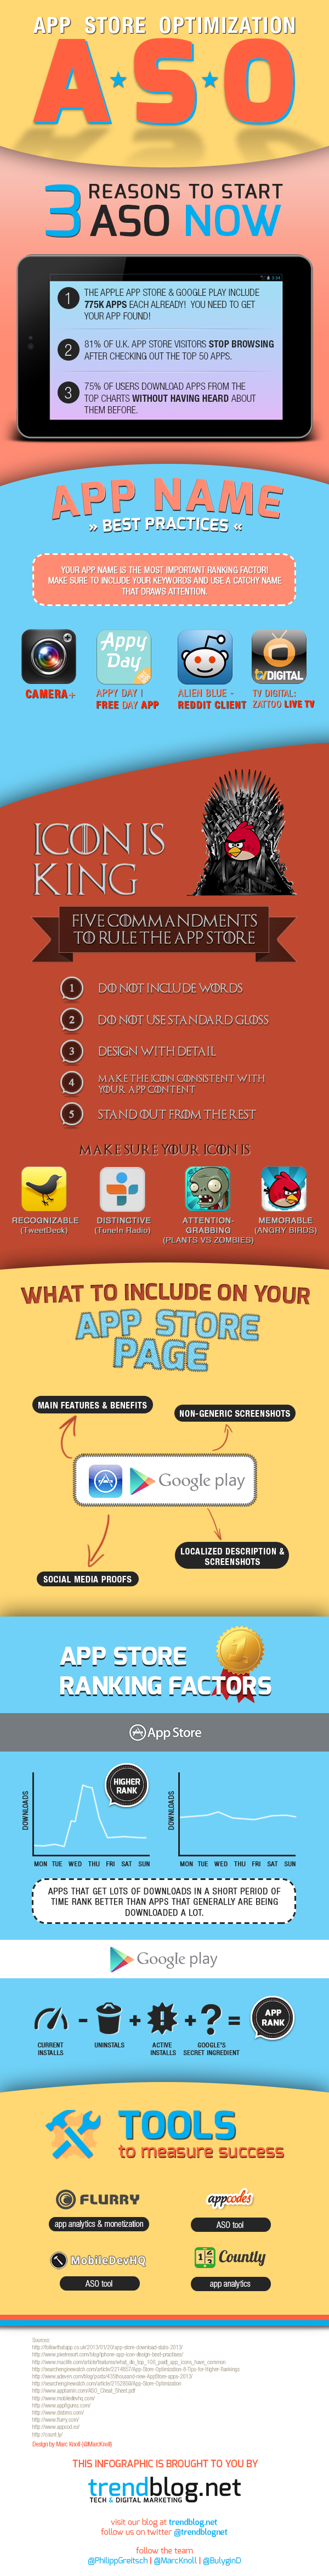 App Store Optimization Infographic by trendblog.net